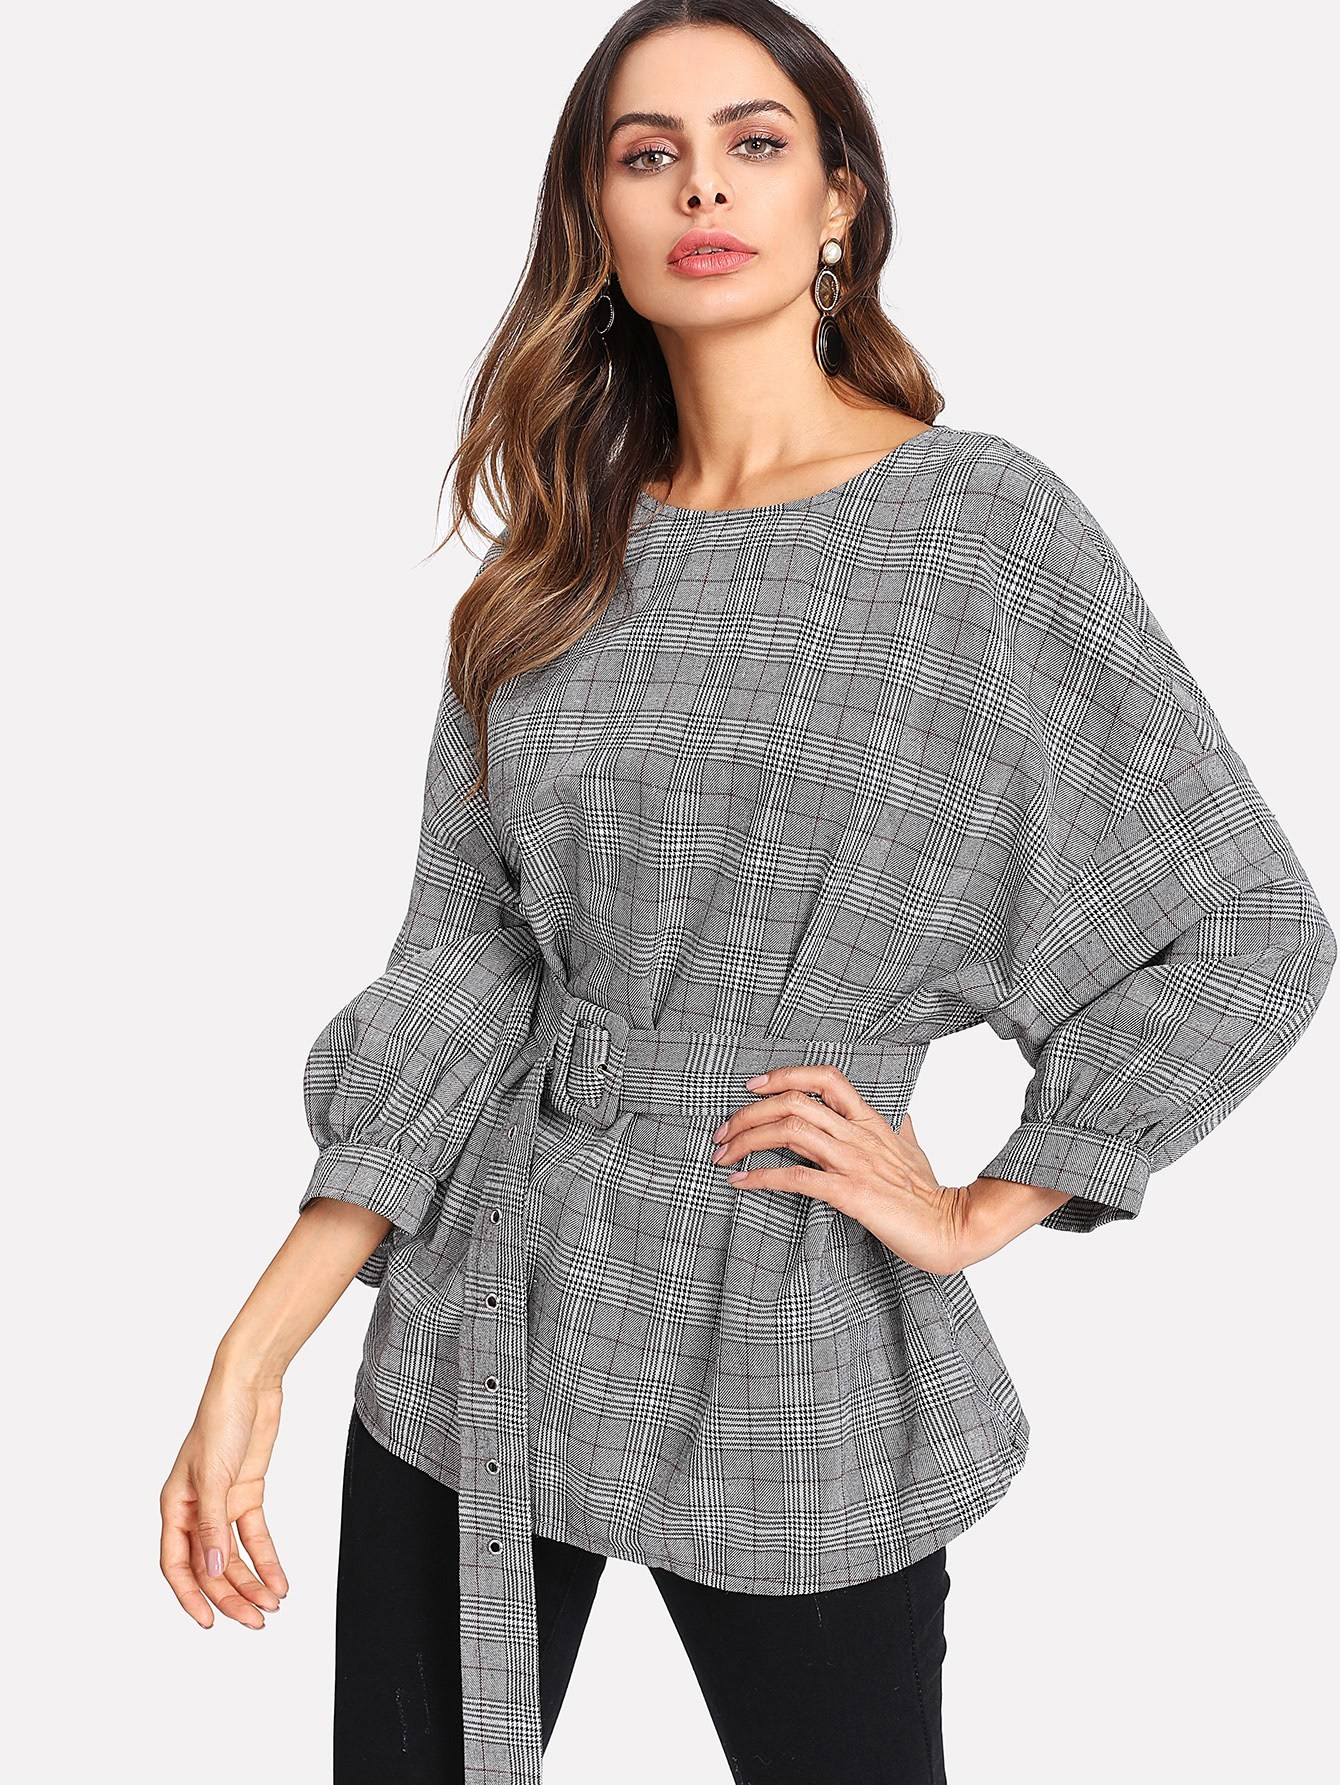 Buckled Belt Detail Plaid Top pearl detail layered frill sleeve top